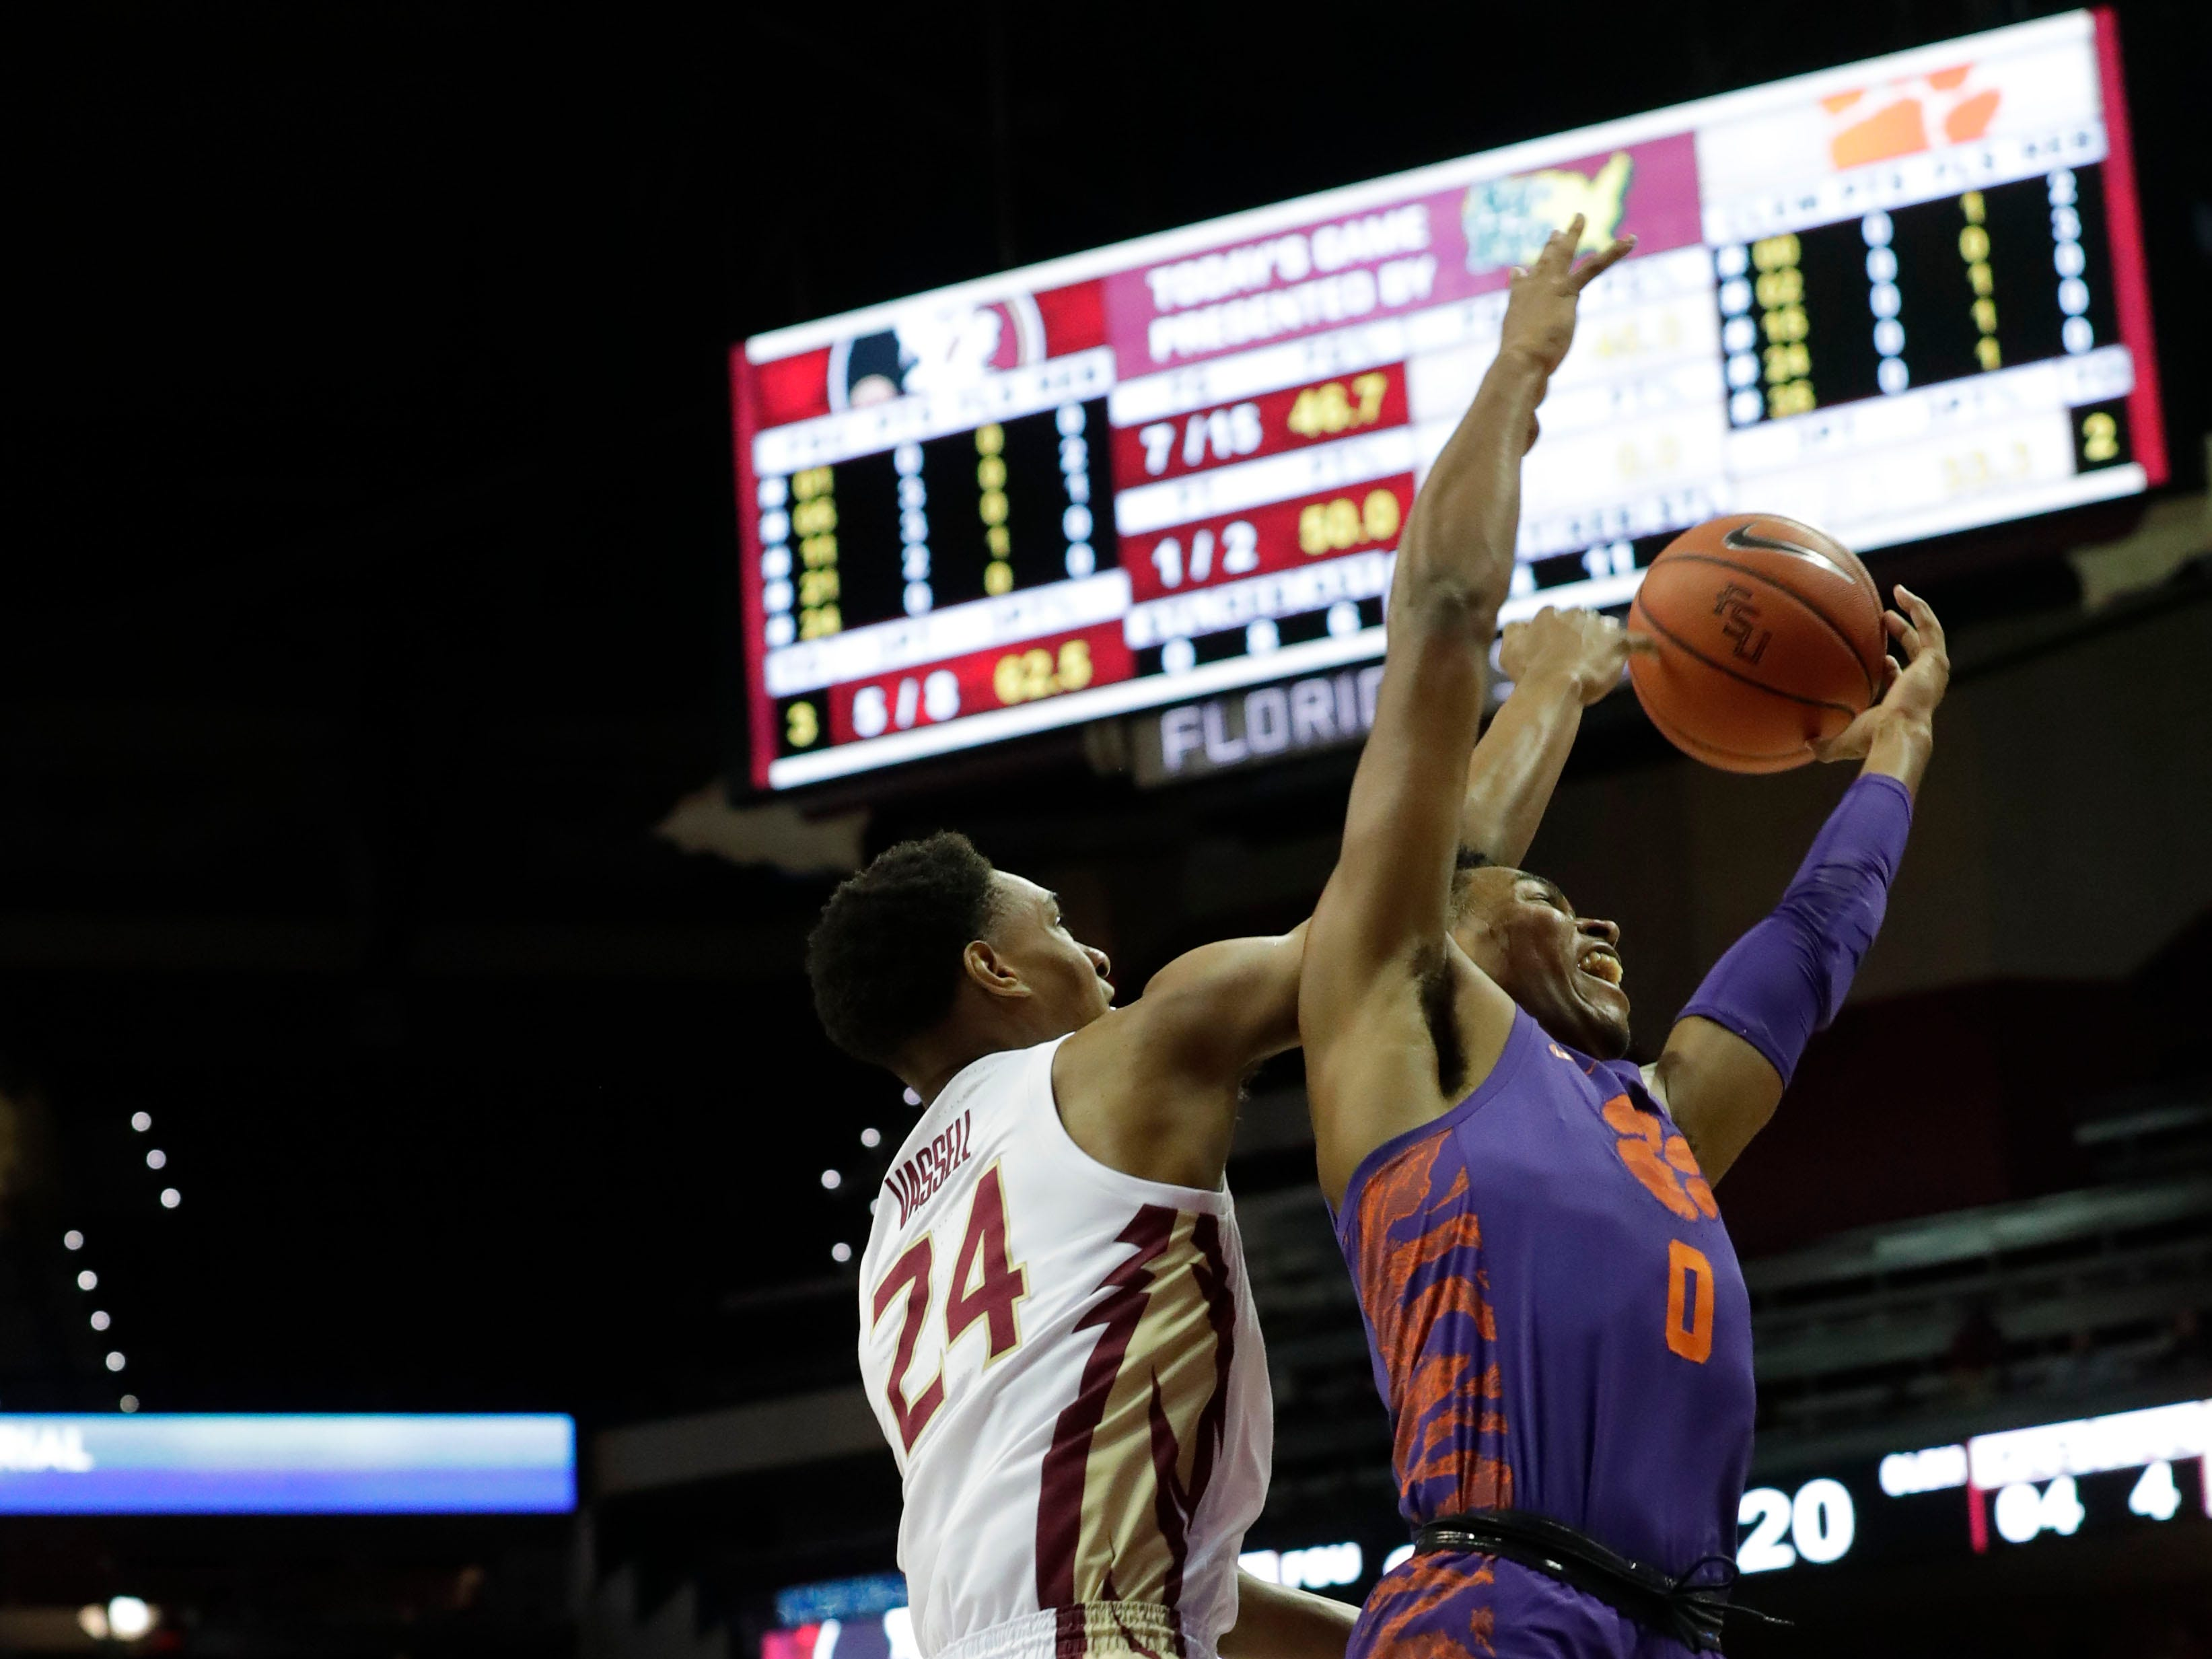 Florida State Seminoles guard Devin Vassell (24) and Clemson Tigers guard Clyde Trapp (0) fight for the rebound. The Florida State Seminoles face off against the Clemson Tigers at the Tucker Civic Center, Tuesday, Jan. 22, 2019.